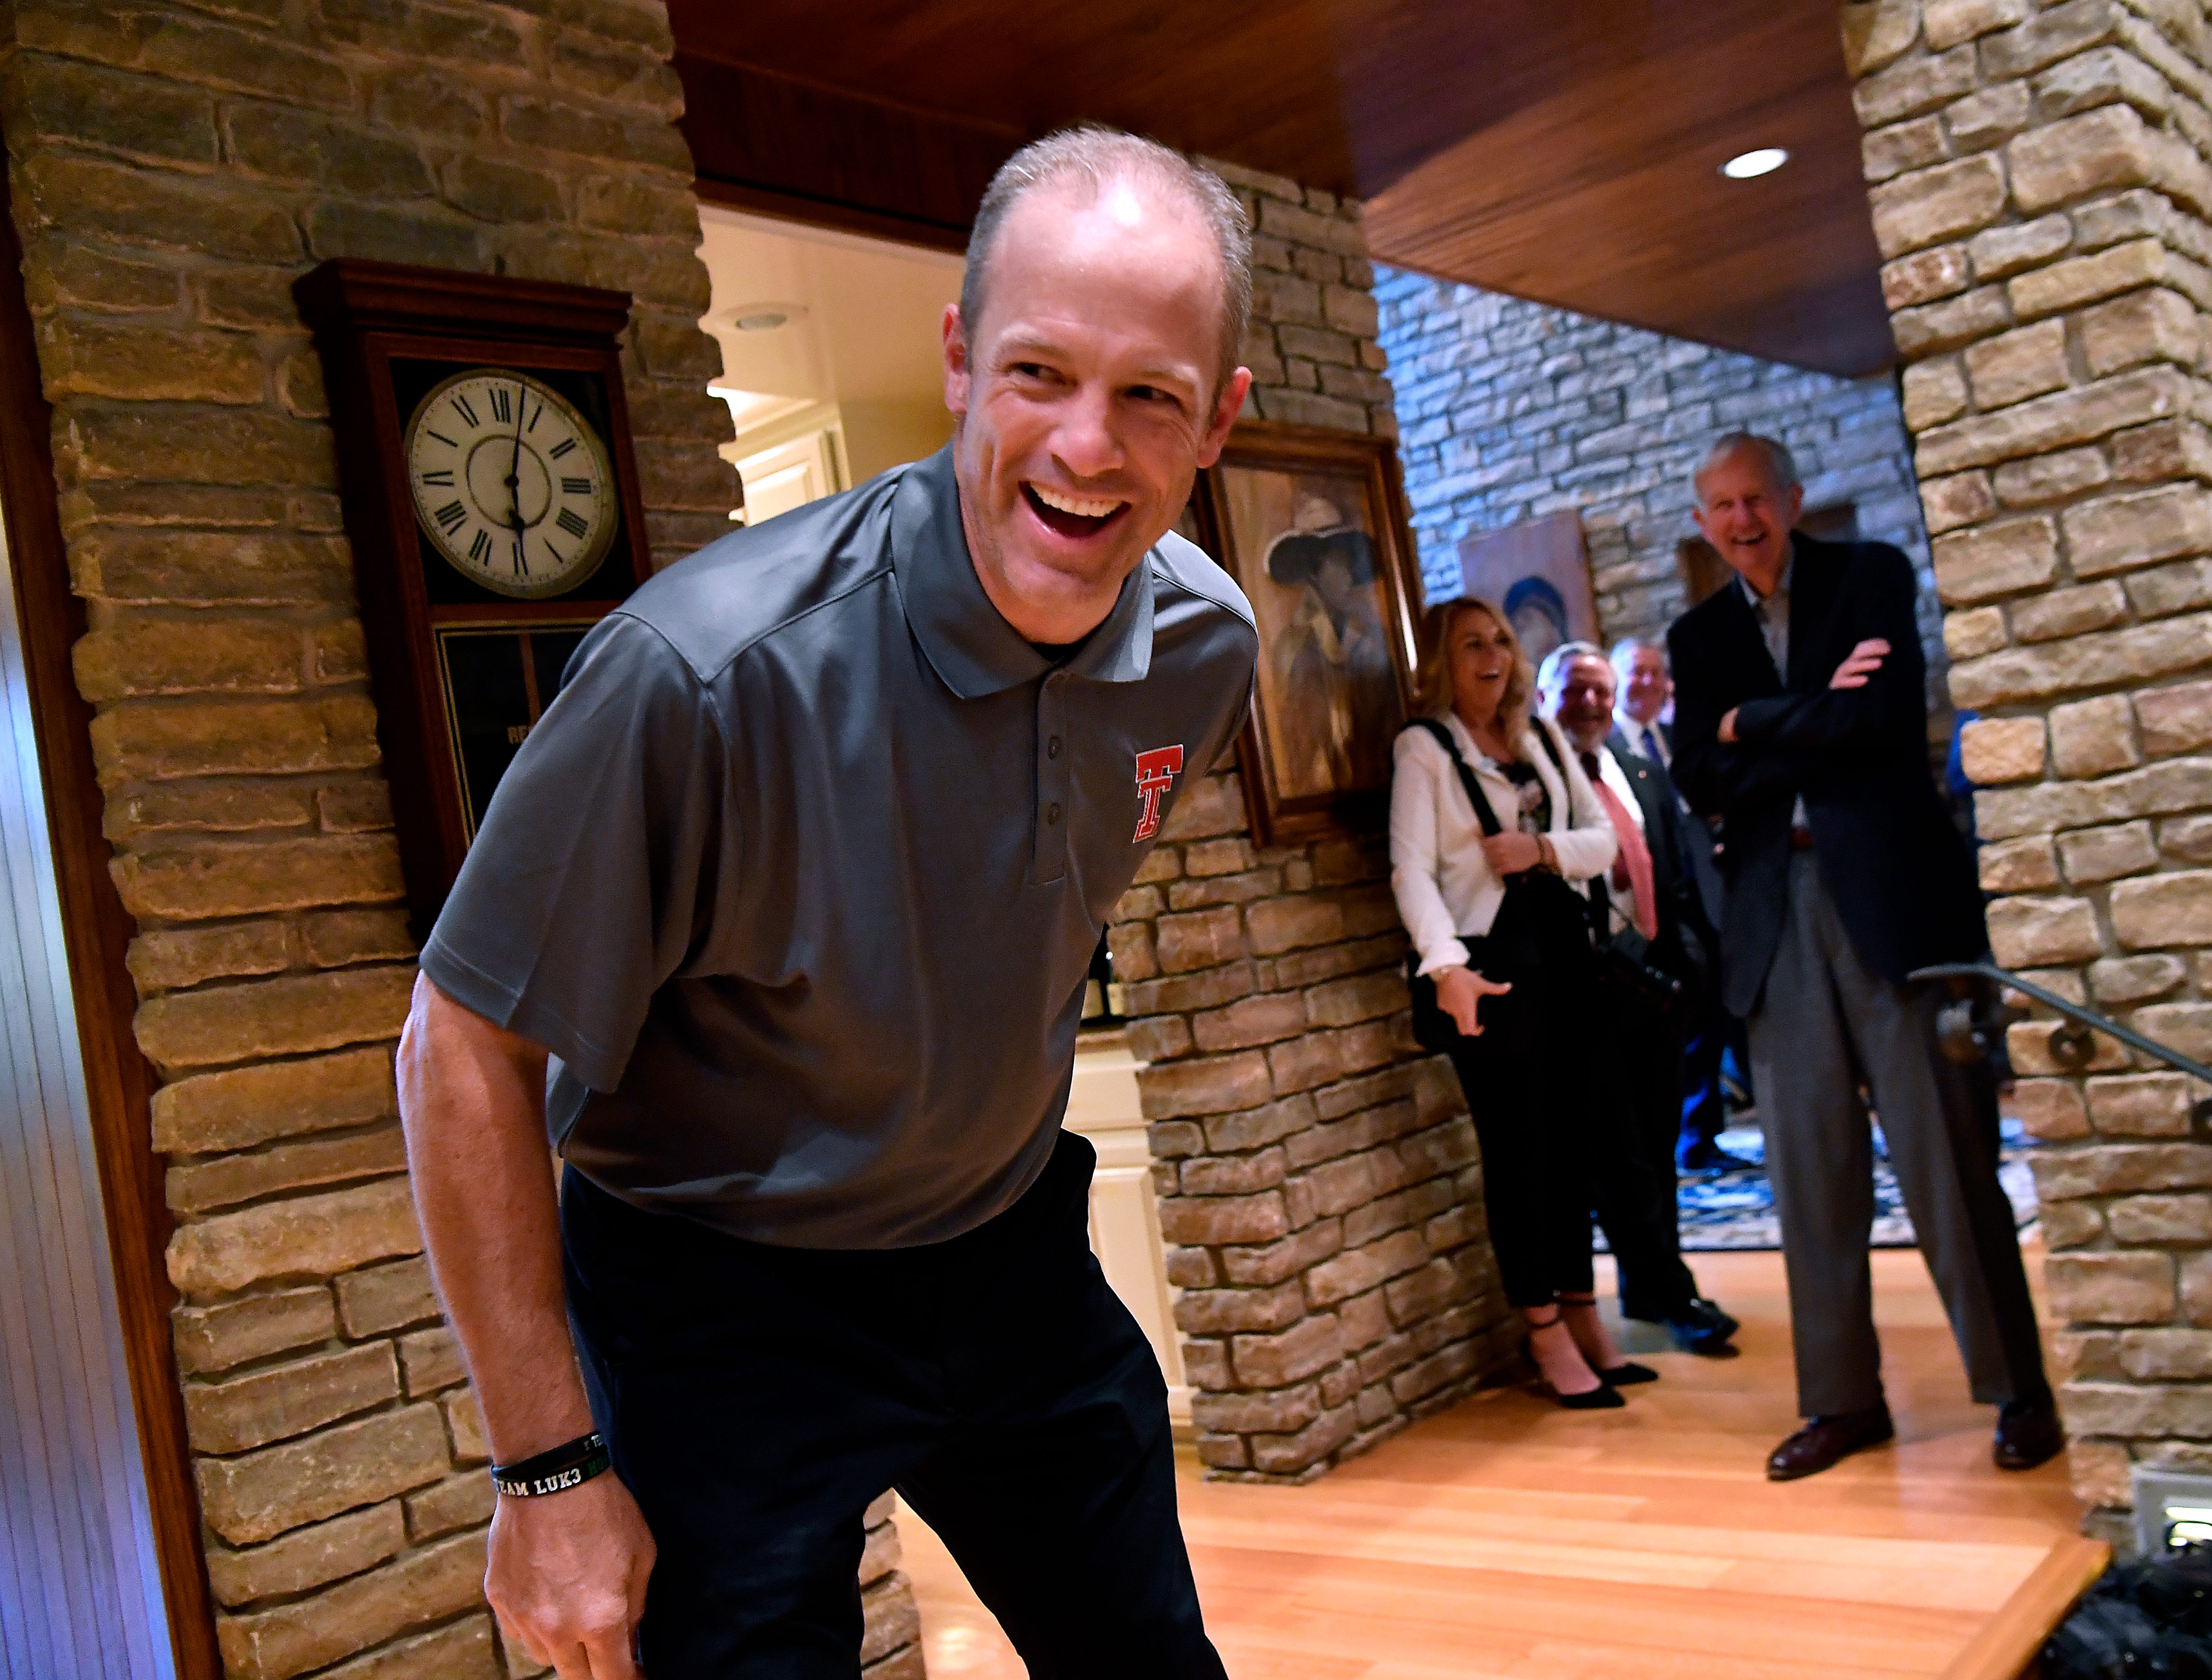 New Texas Tech University football coach Matt Wells showed a sense of humor during his visit Tuesday to Abilene, joking with a photographer. Haven't you taken enough already, he asked, laughing. Wells talked football, of course, but also about his family, philosophies and about being a Texan for six months.